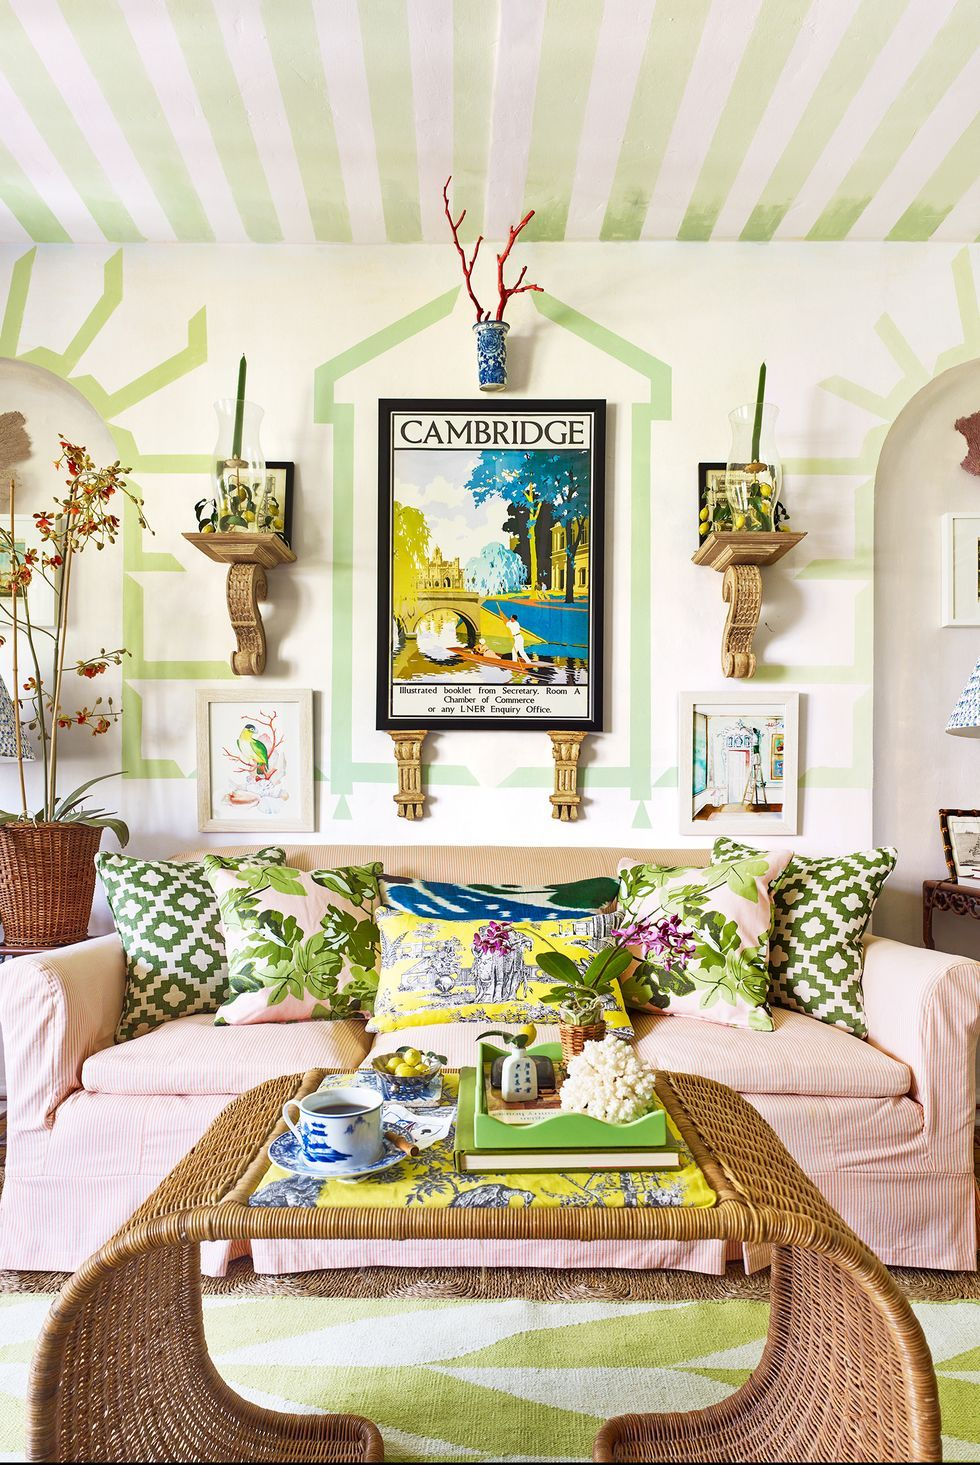 9 Easy Summer Decorating Ideas - Best Summer Home Decor